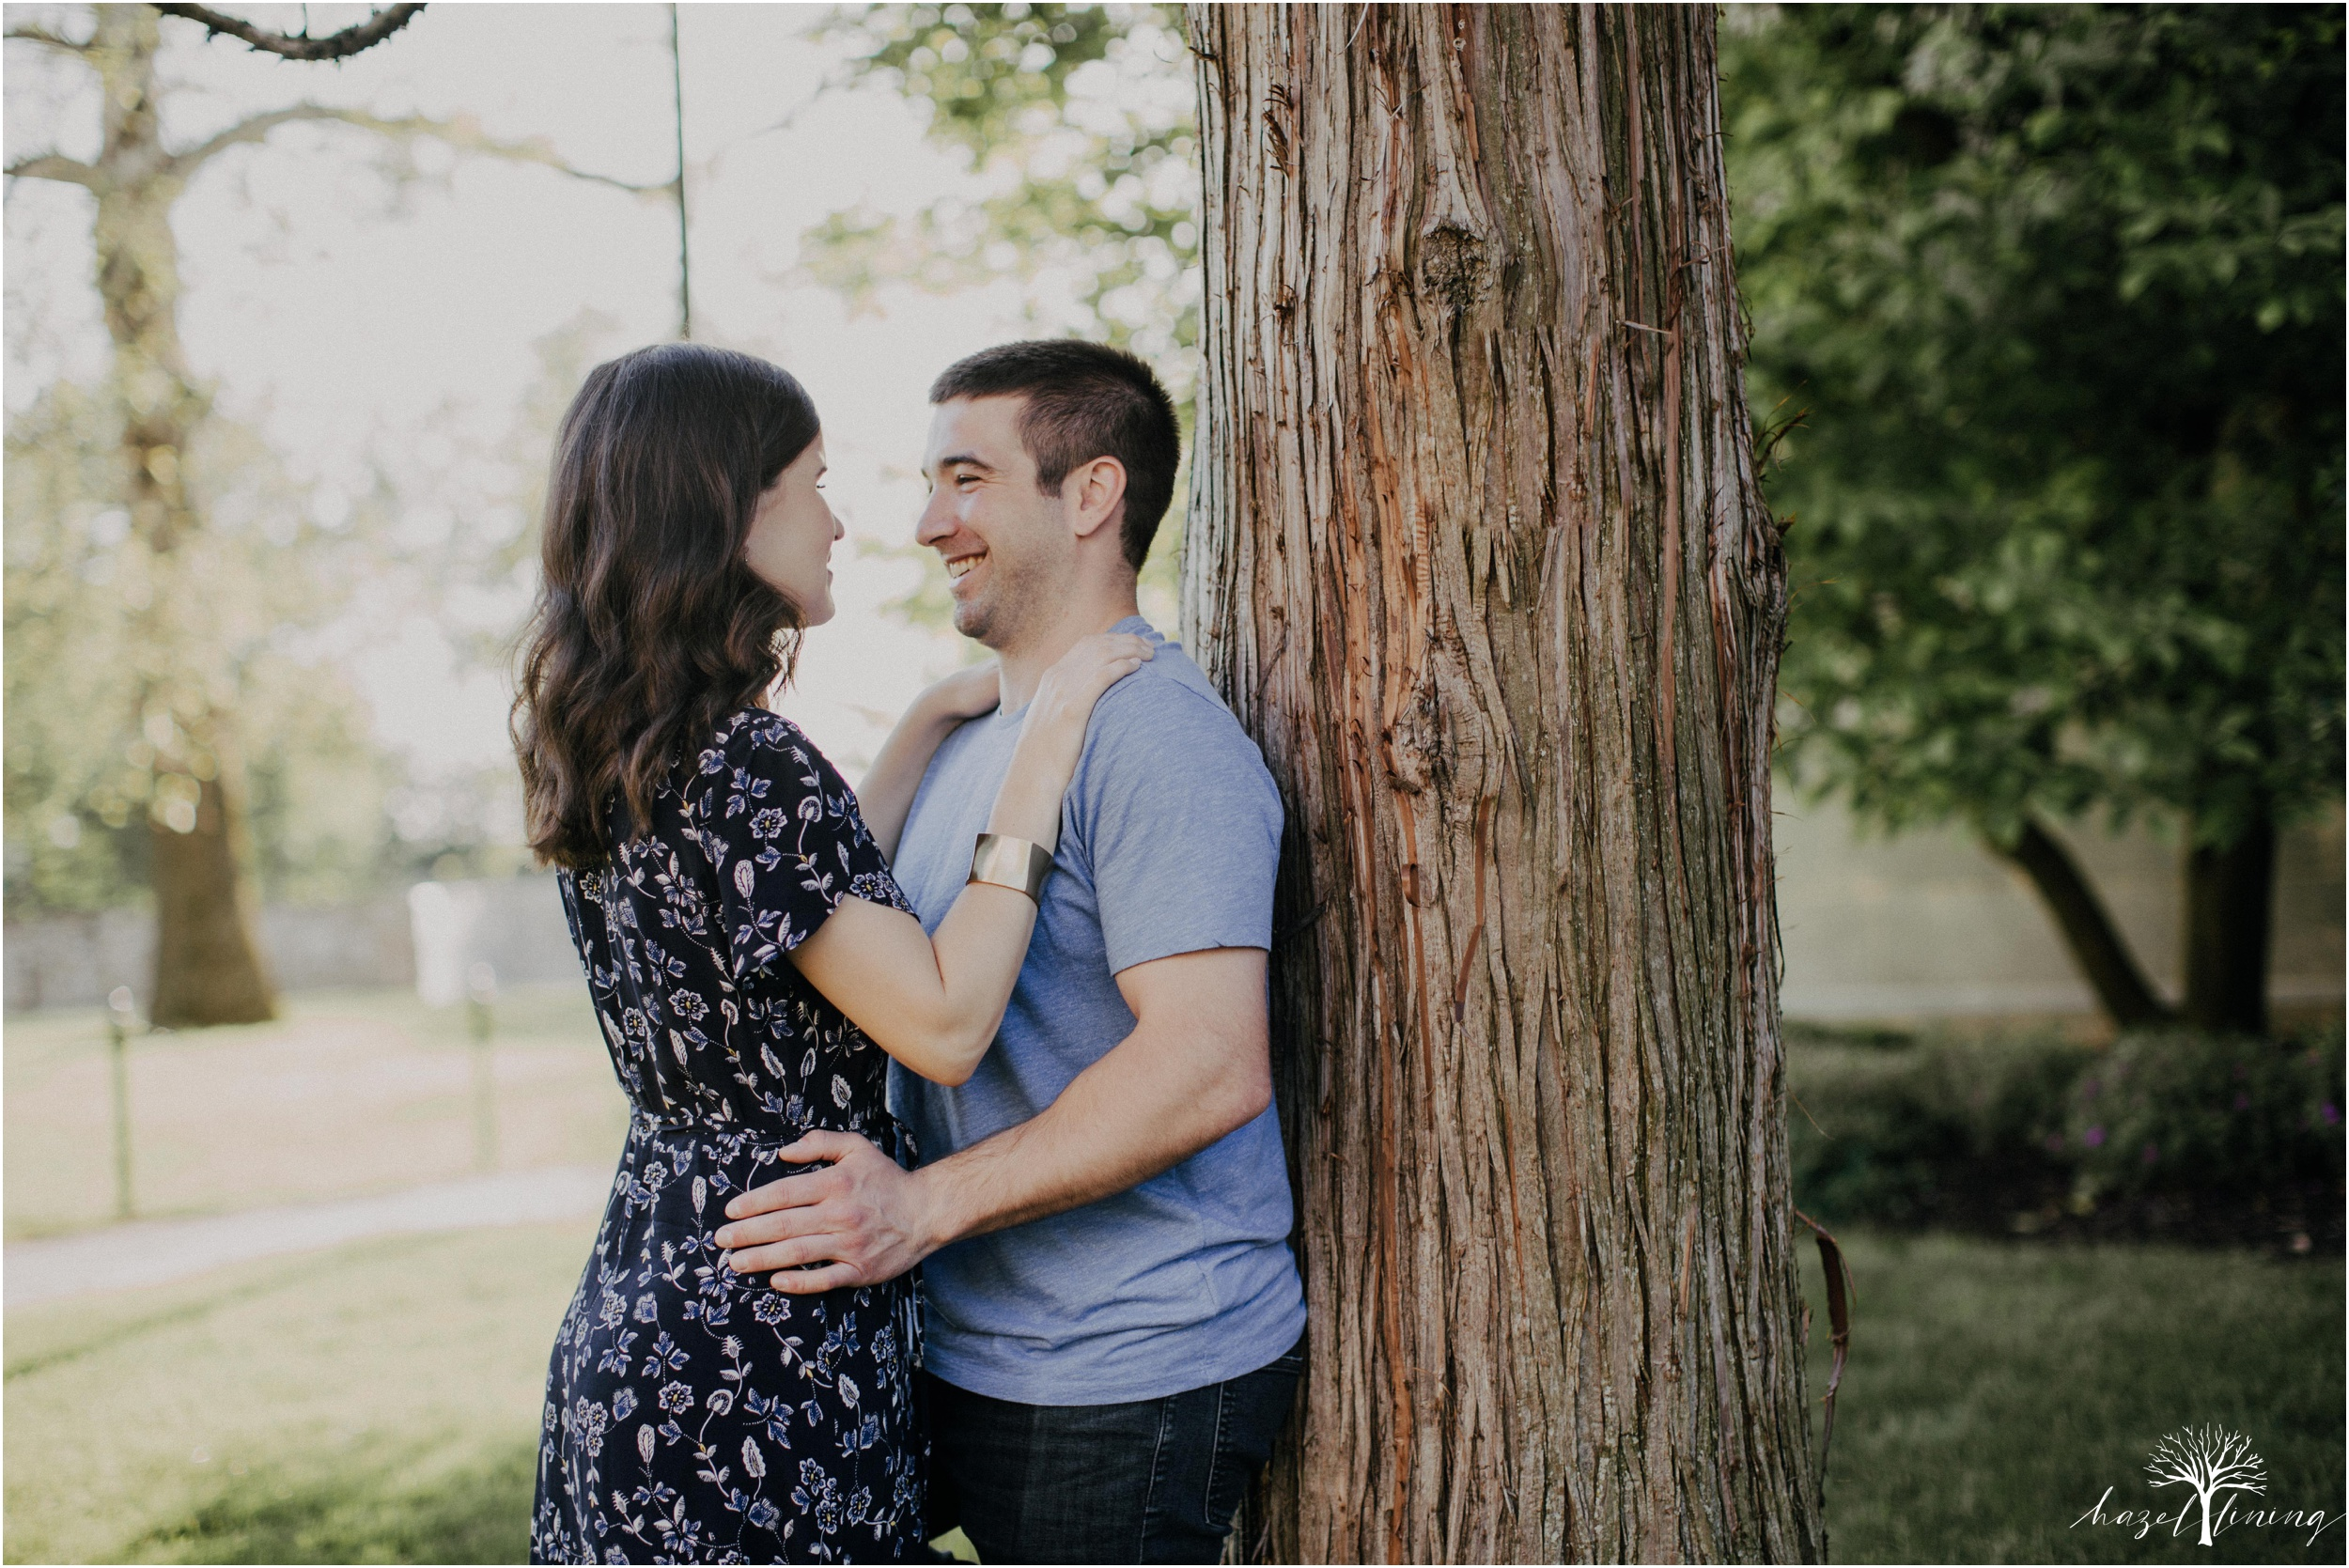 ellyn-jack-kutztown-university-of-pennsylvania-engagement-session-hazel-lining-photography-destination-elopement-wedding-engagement-photography_0225.jpg